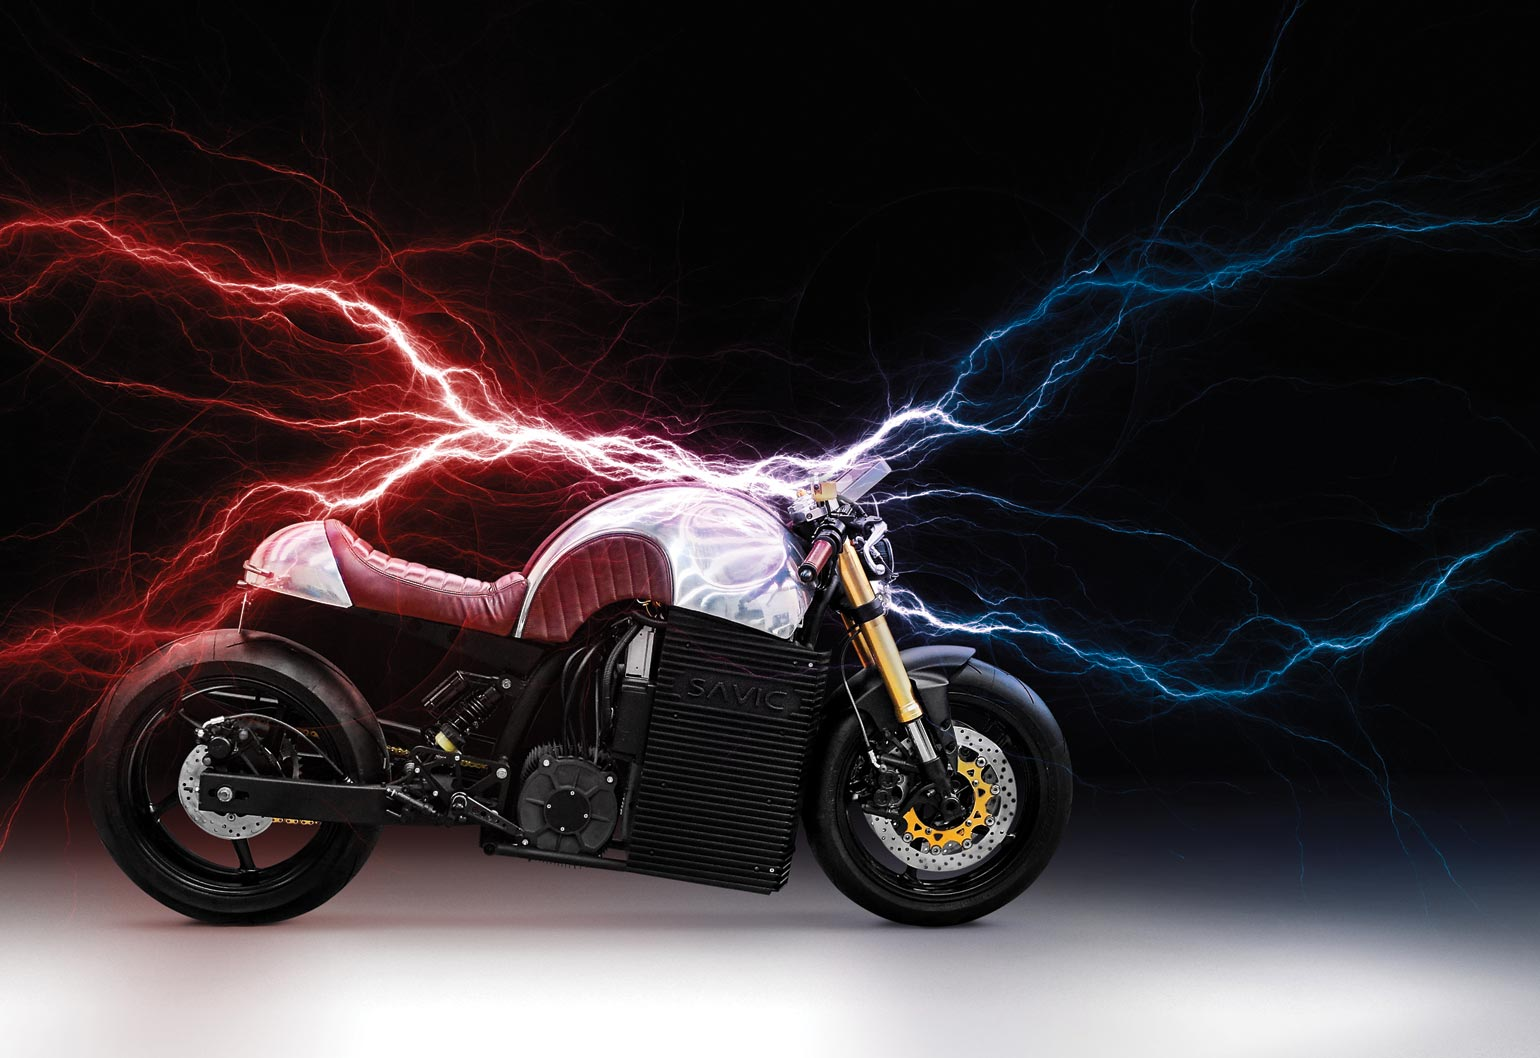 Australia's First Electric Motorcycle Company Is Ready To